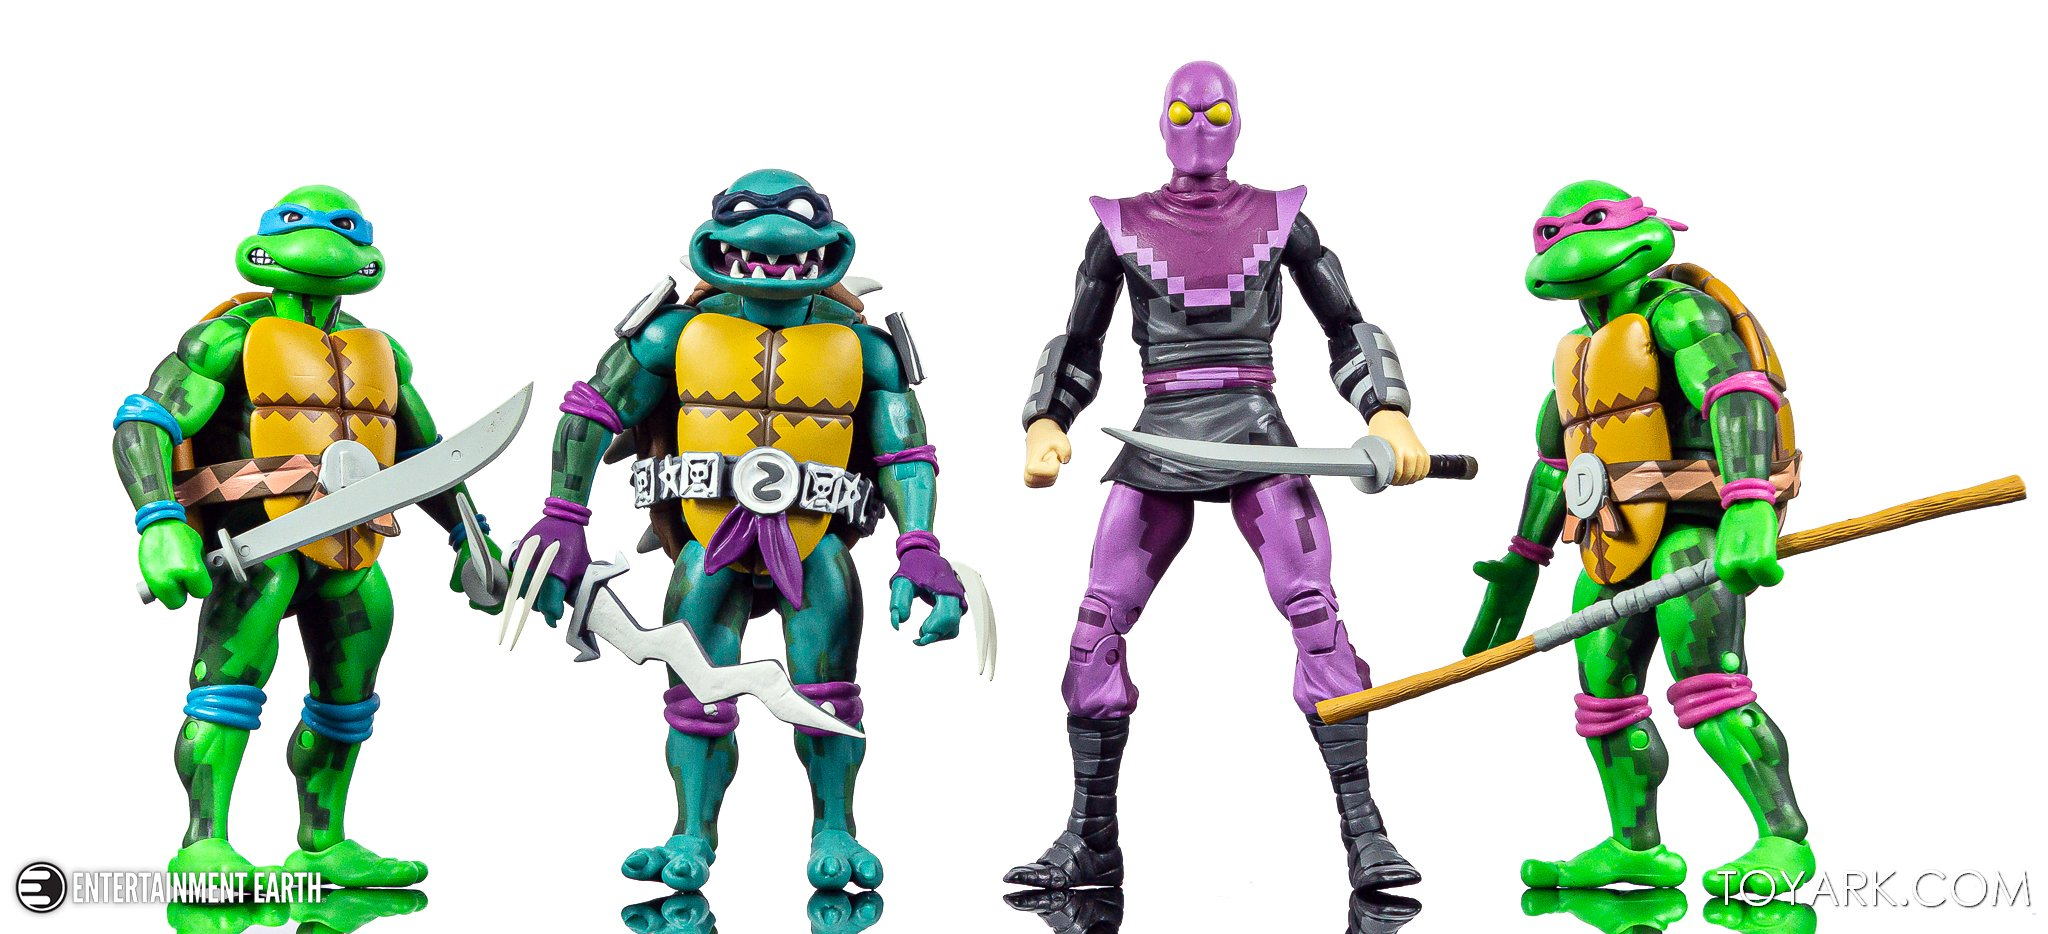 https://news.toyark.com/wp-content/uploads/sites/4/2020/06/NECA-TMNT-Turtles-In-Time-S1-037.jpg